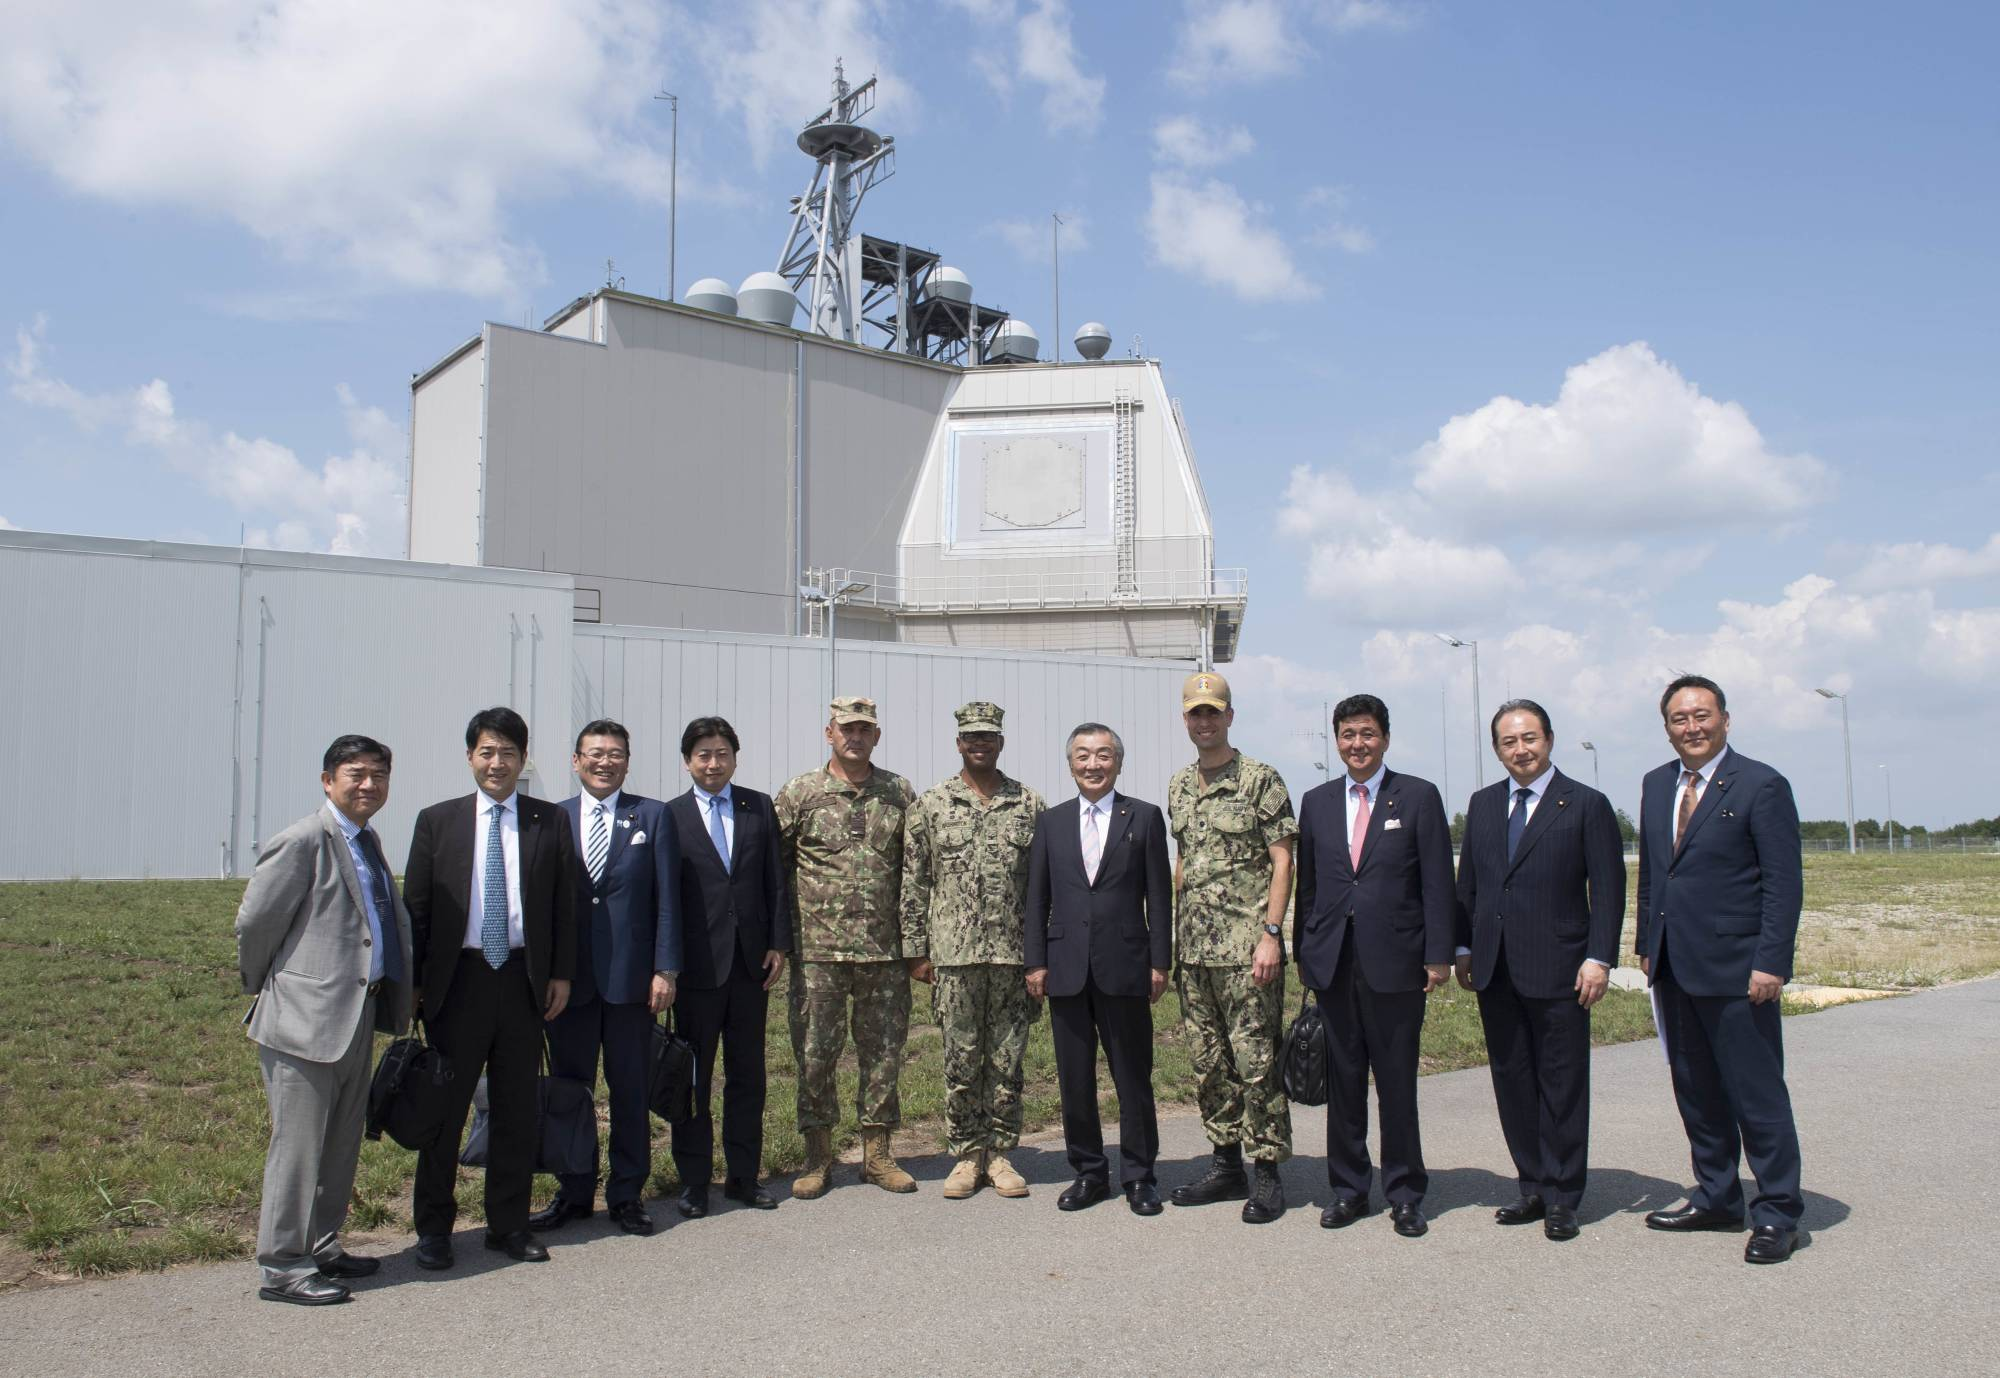 Diet members visit a U.S. Aegis Ashore installation in Romania on July 31, 2018. The National Security Council has endorsed plans to cancel the deployment of the costly missile defense system aimed at bolstering Japan's capability against threats from North Korea. | U.S. NAVY